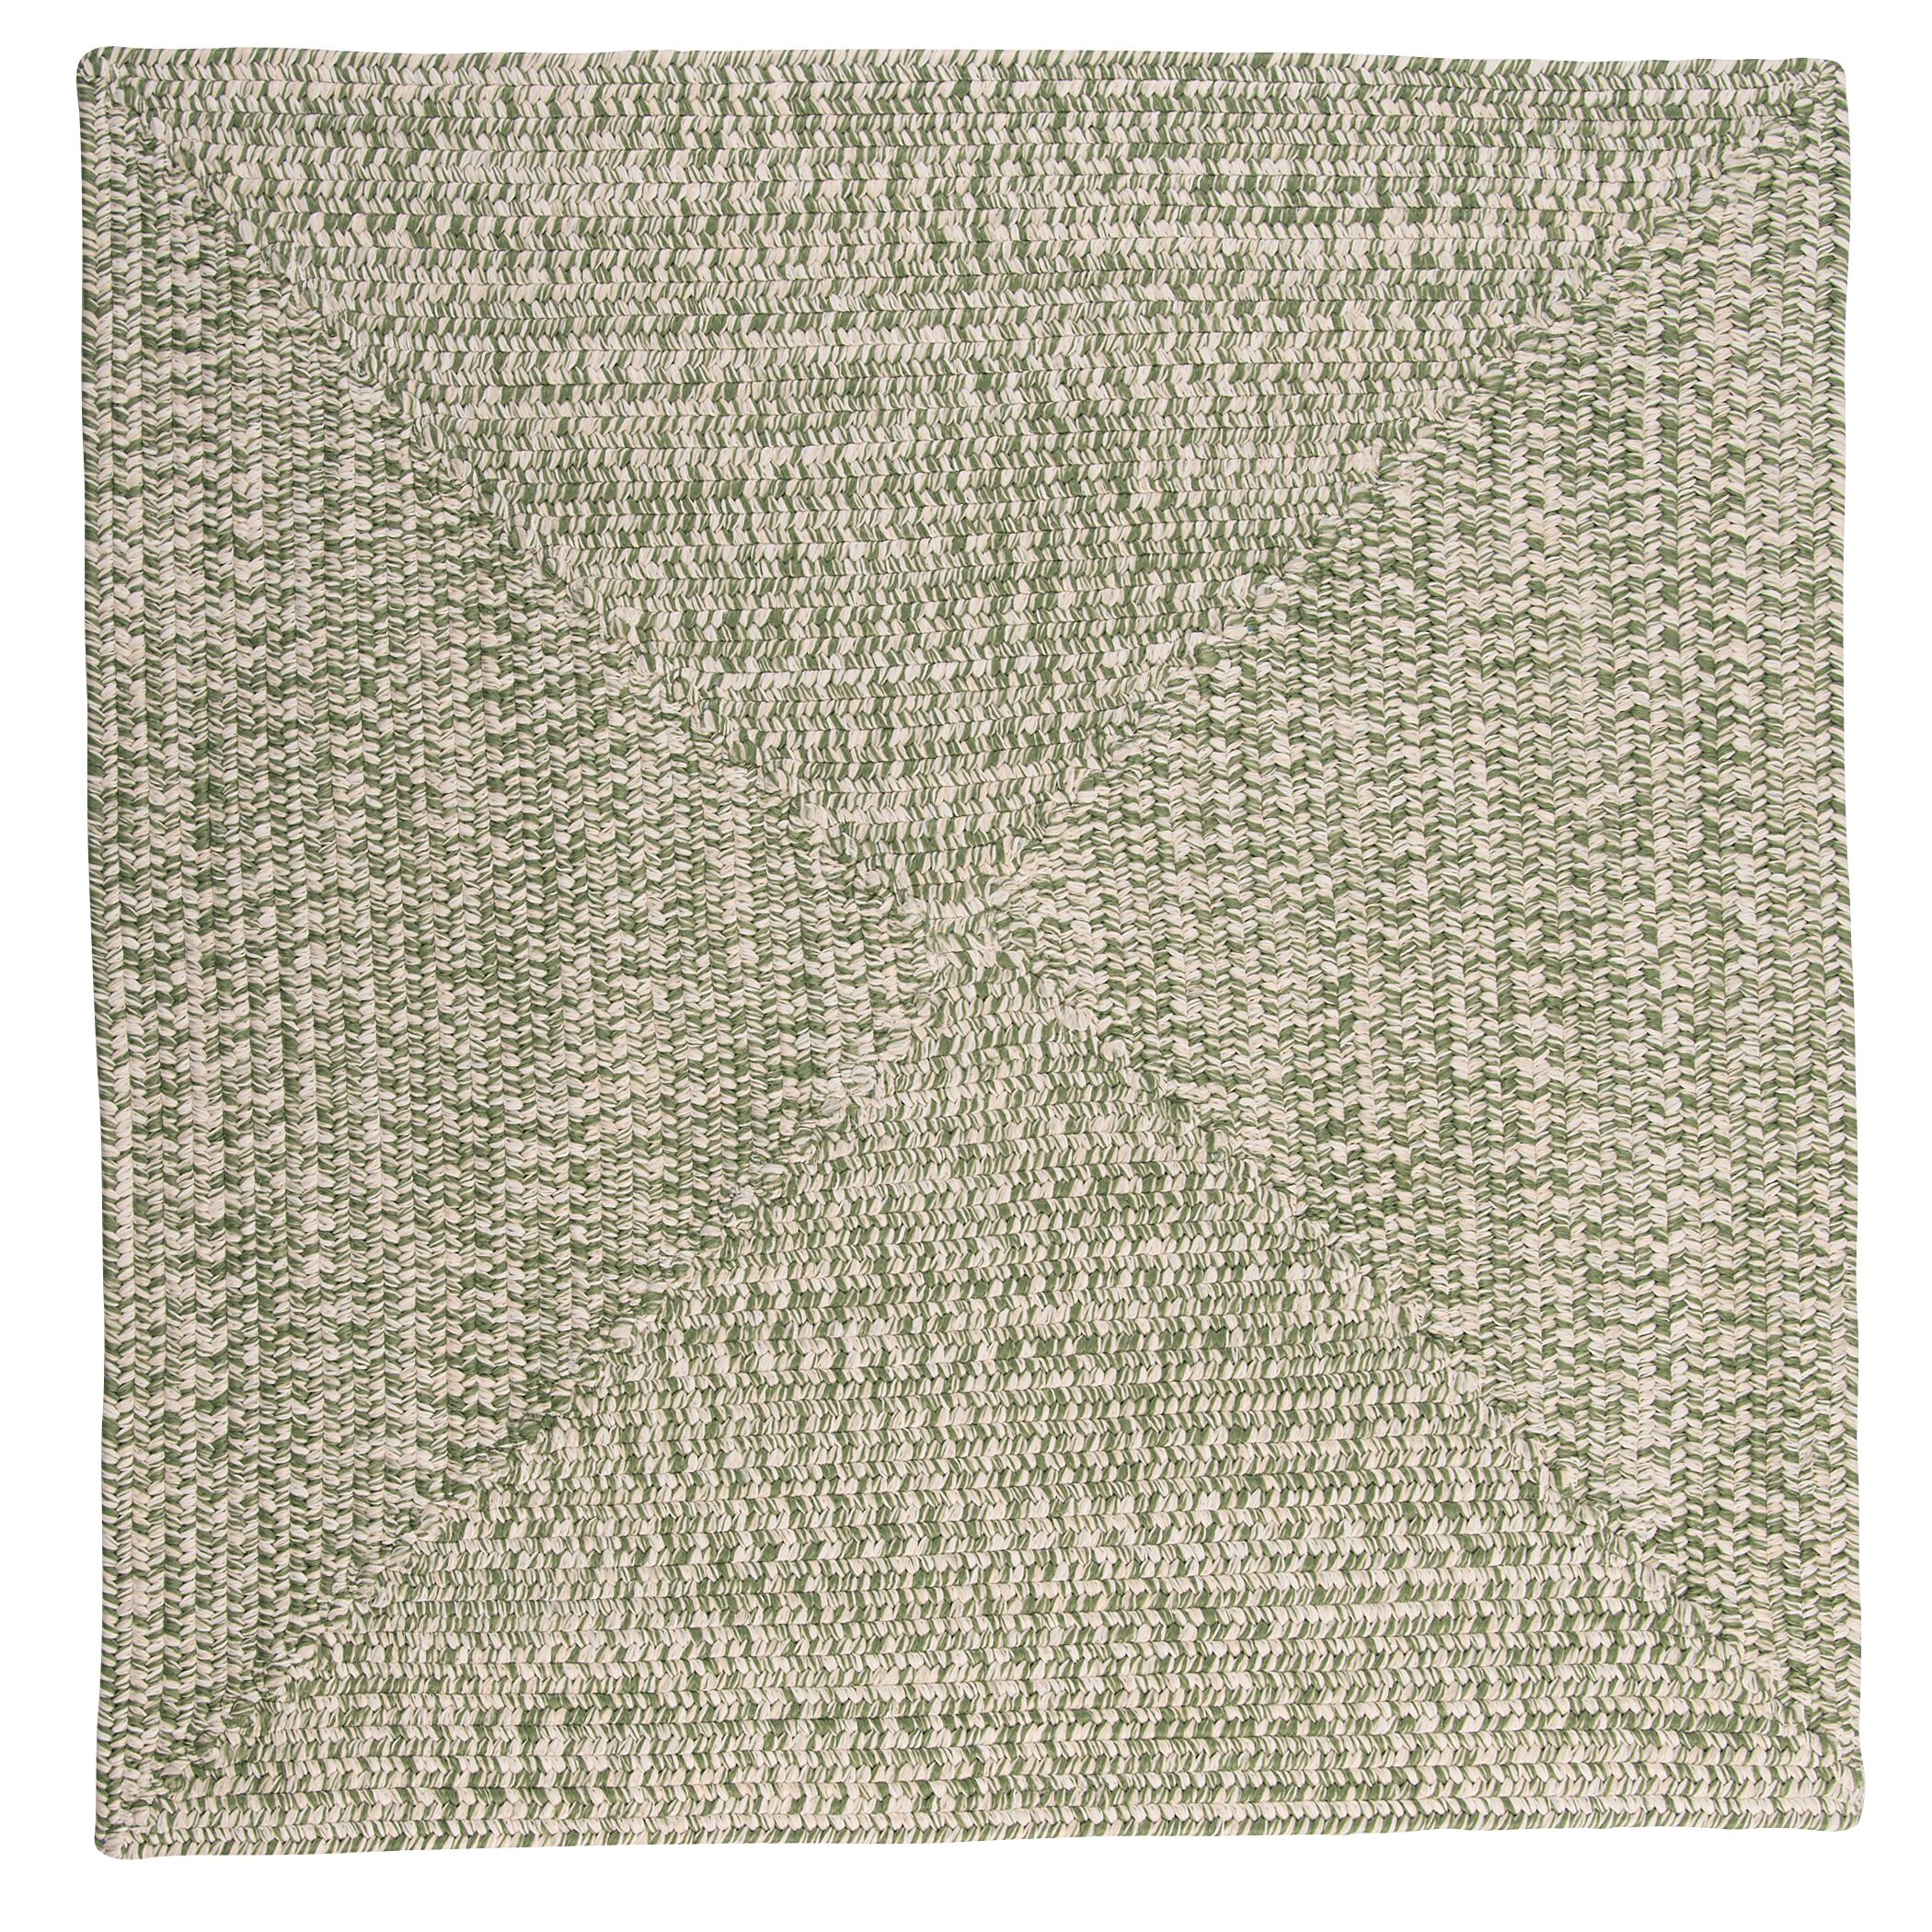 Hawkins Greenery Indoor / Outdoor Area Rug Rug Size: Square 10'